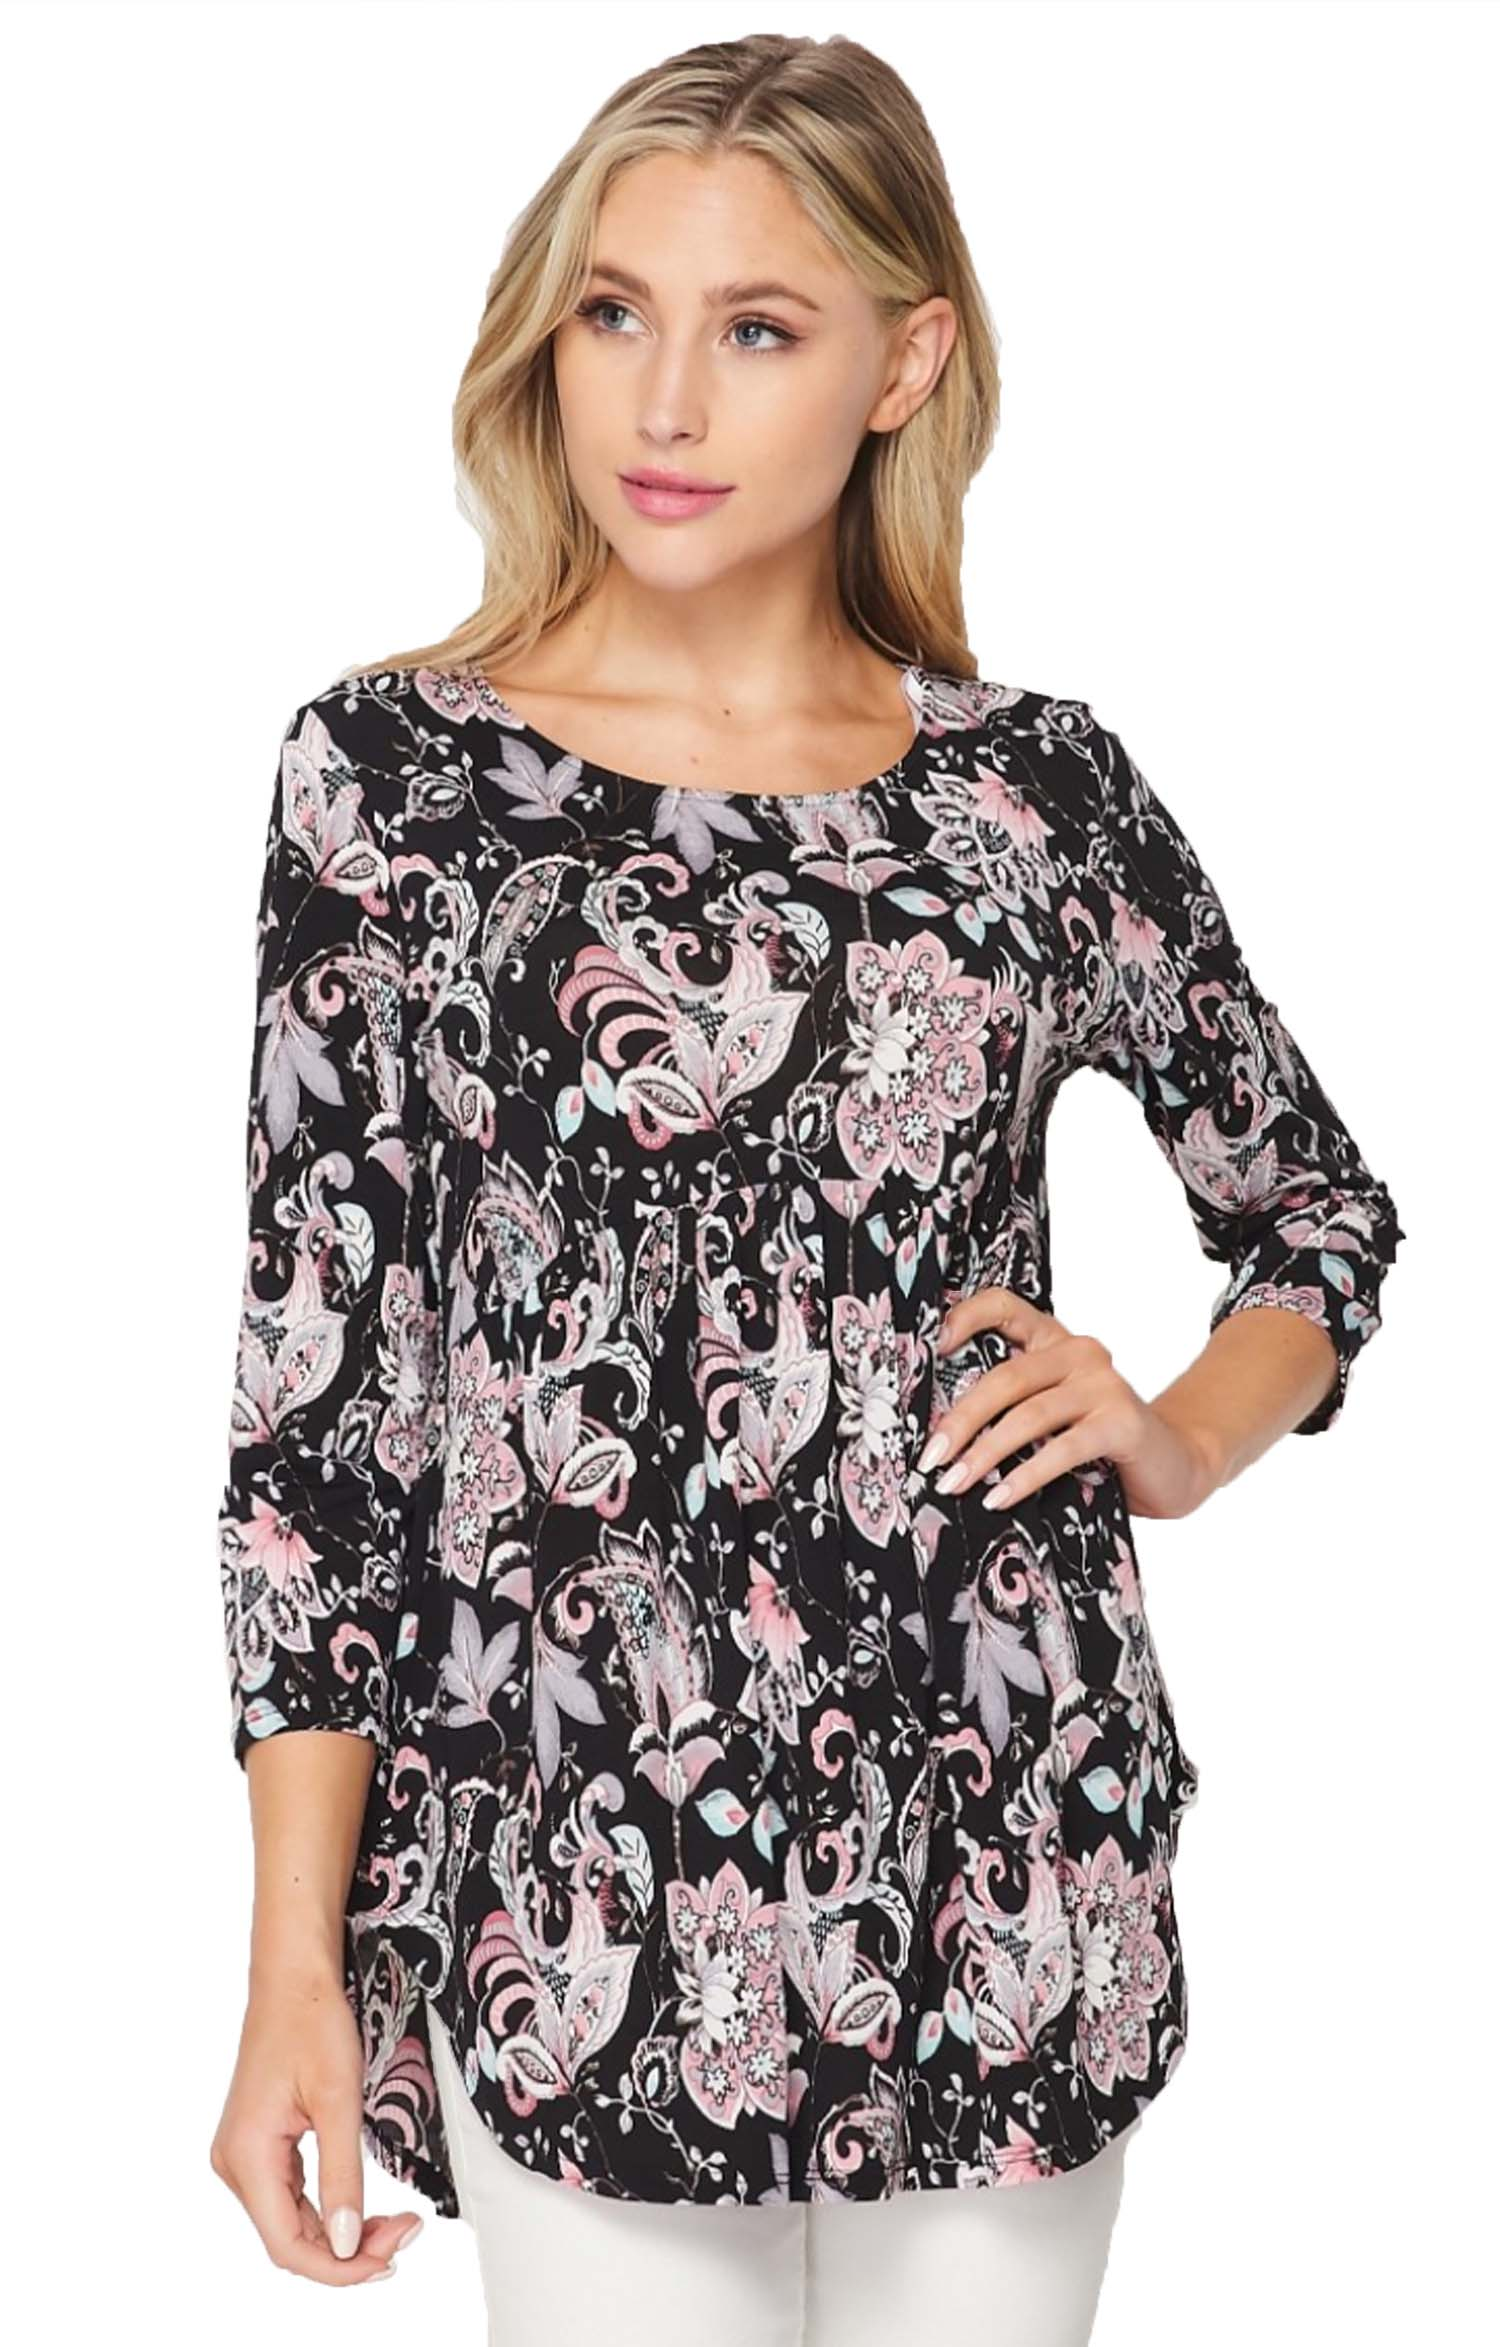 Black Floral Empire Waist Tunic